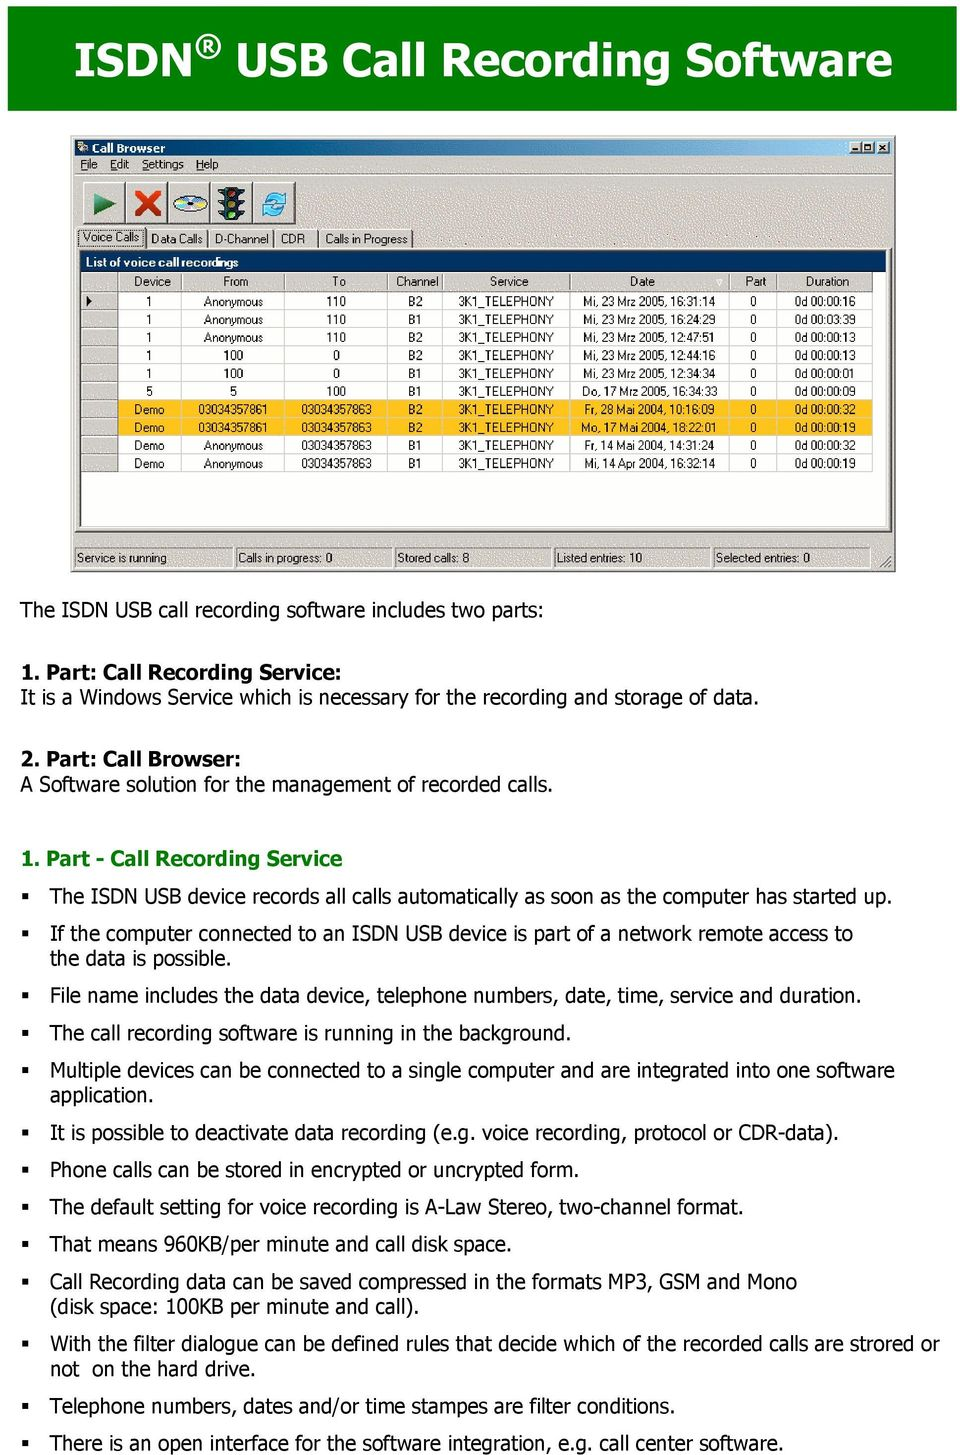 Part - Call Recording Service The ISDN USB device records all calls automatically as soon as the computer has started up.